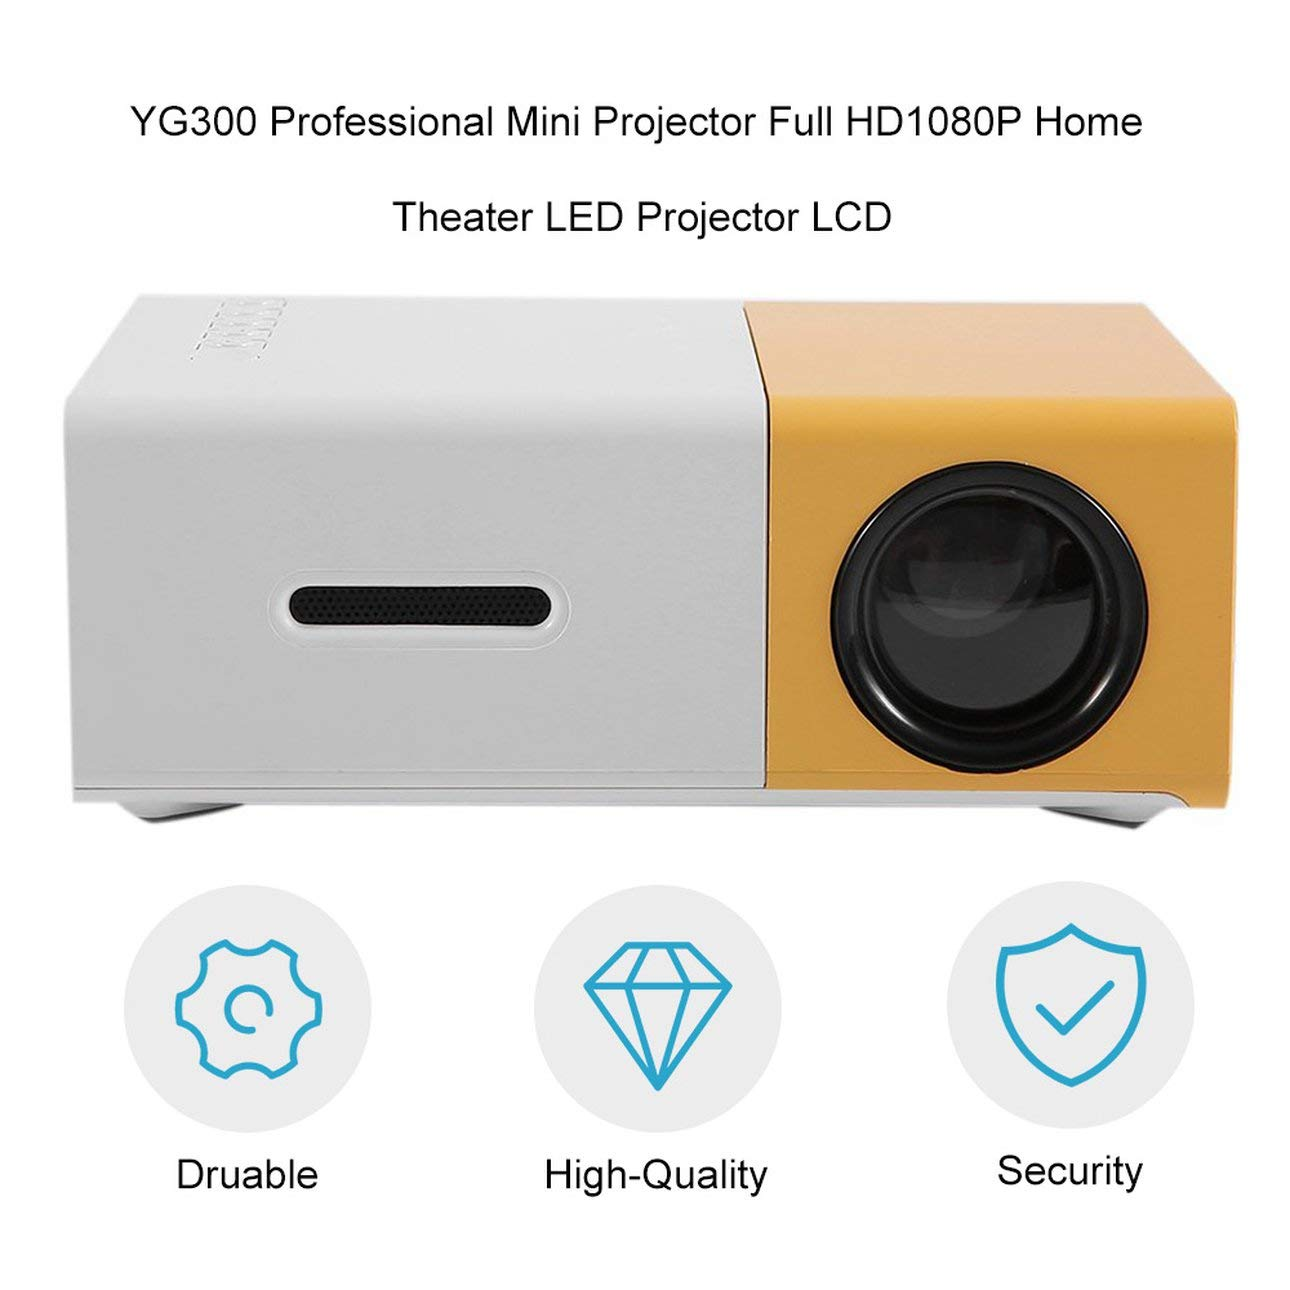 Ballylelly Mini proyector profesional YG300 Full HD1080P Proyector ...